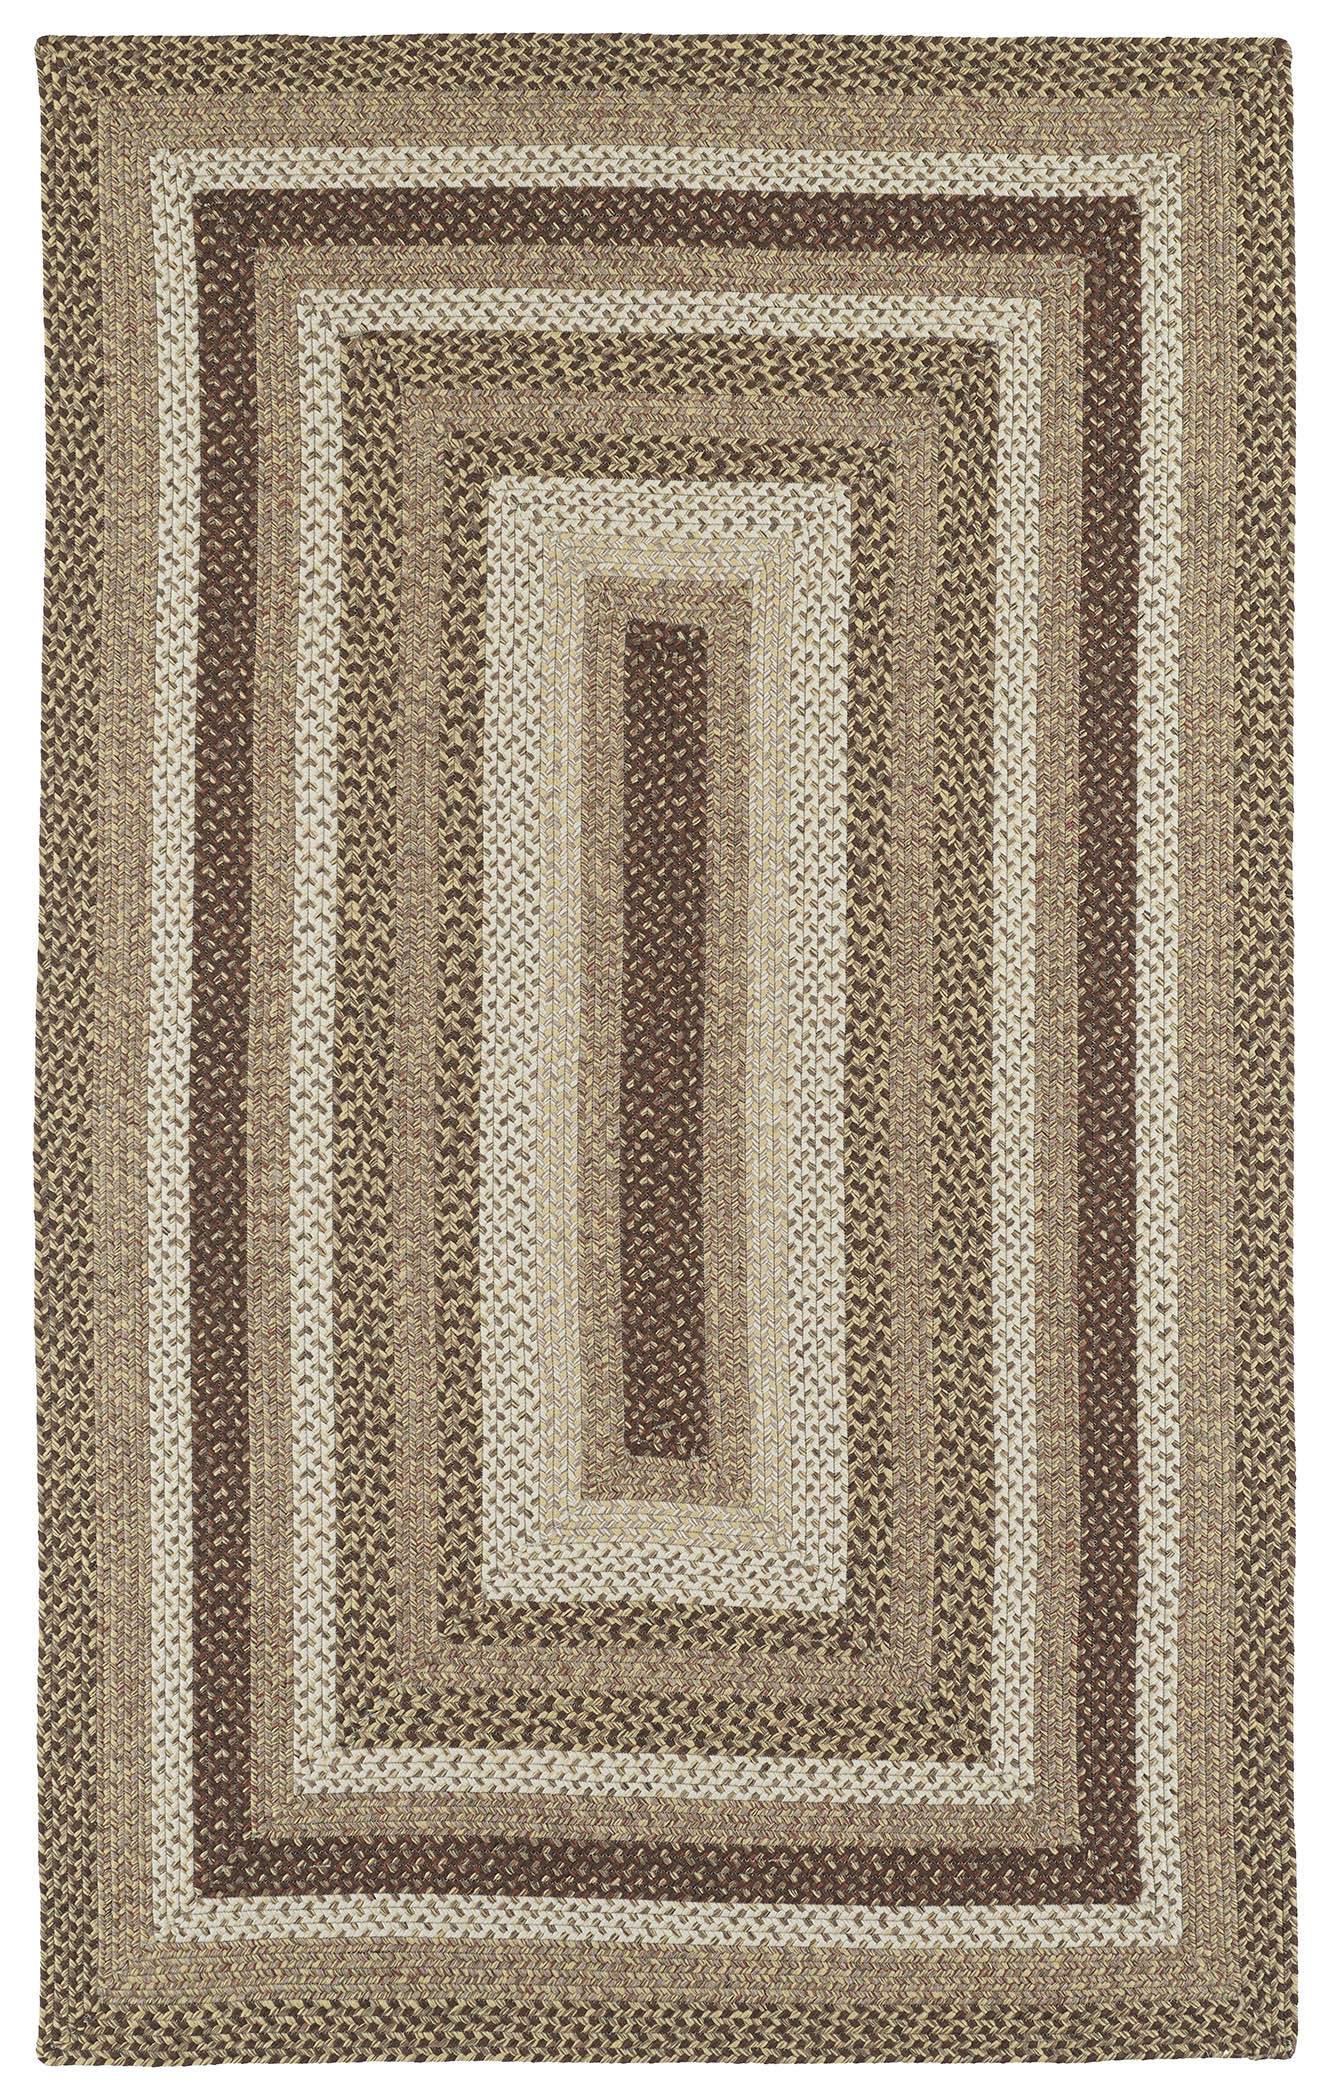 Bimini 3010 60 Mocha Outdoor Rug by Kaleen